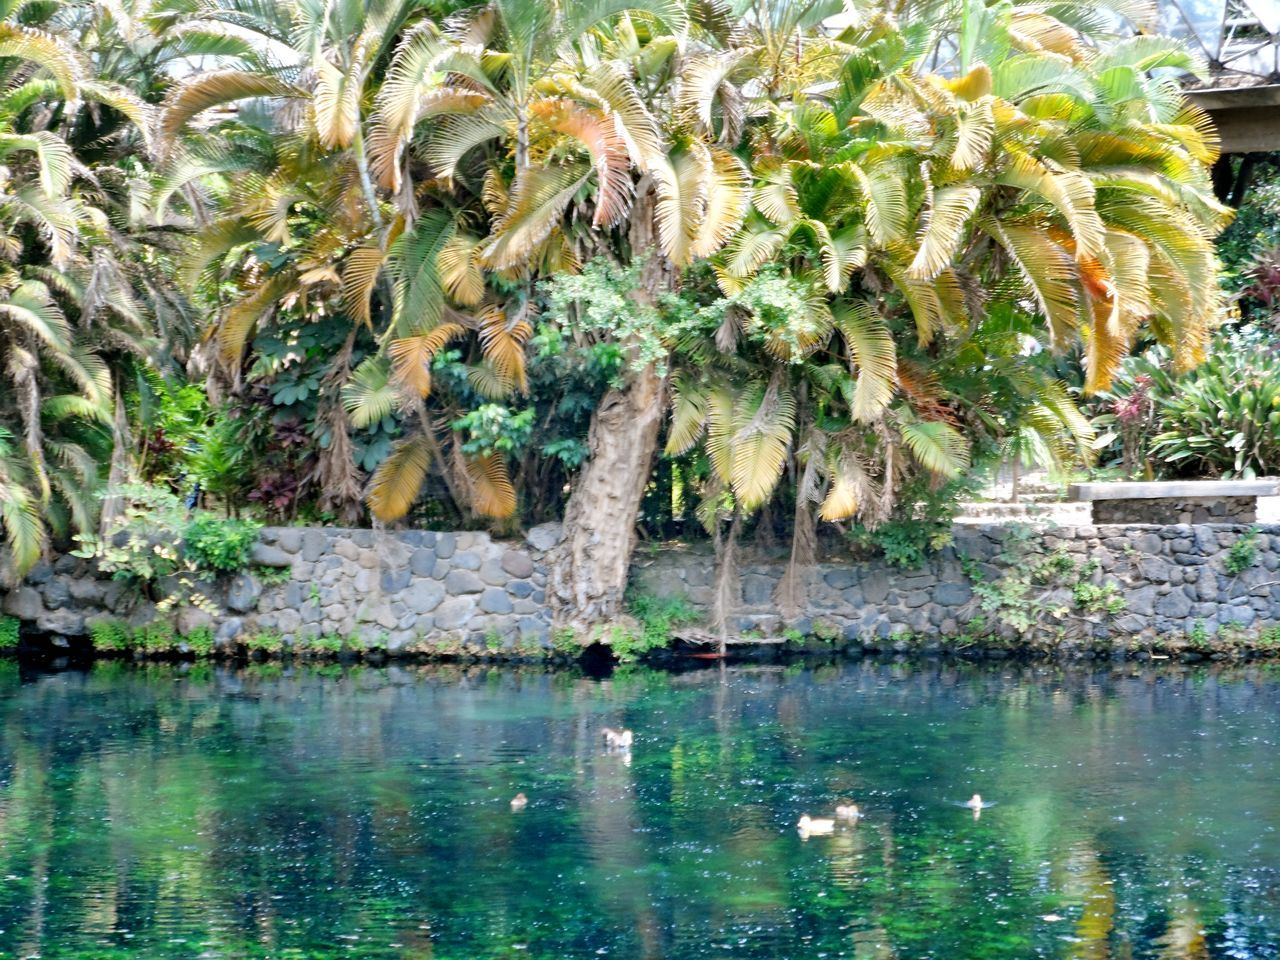 water, reflection, outdoors, nature, plant, day, no people, animals in the wild, waterfront, animal themes, one animal, beauty in nature, tree, sea, scenics, palm tree, swimming, mammal